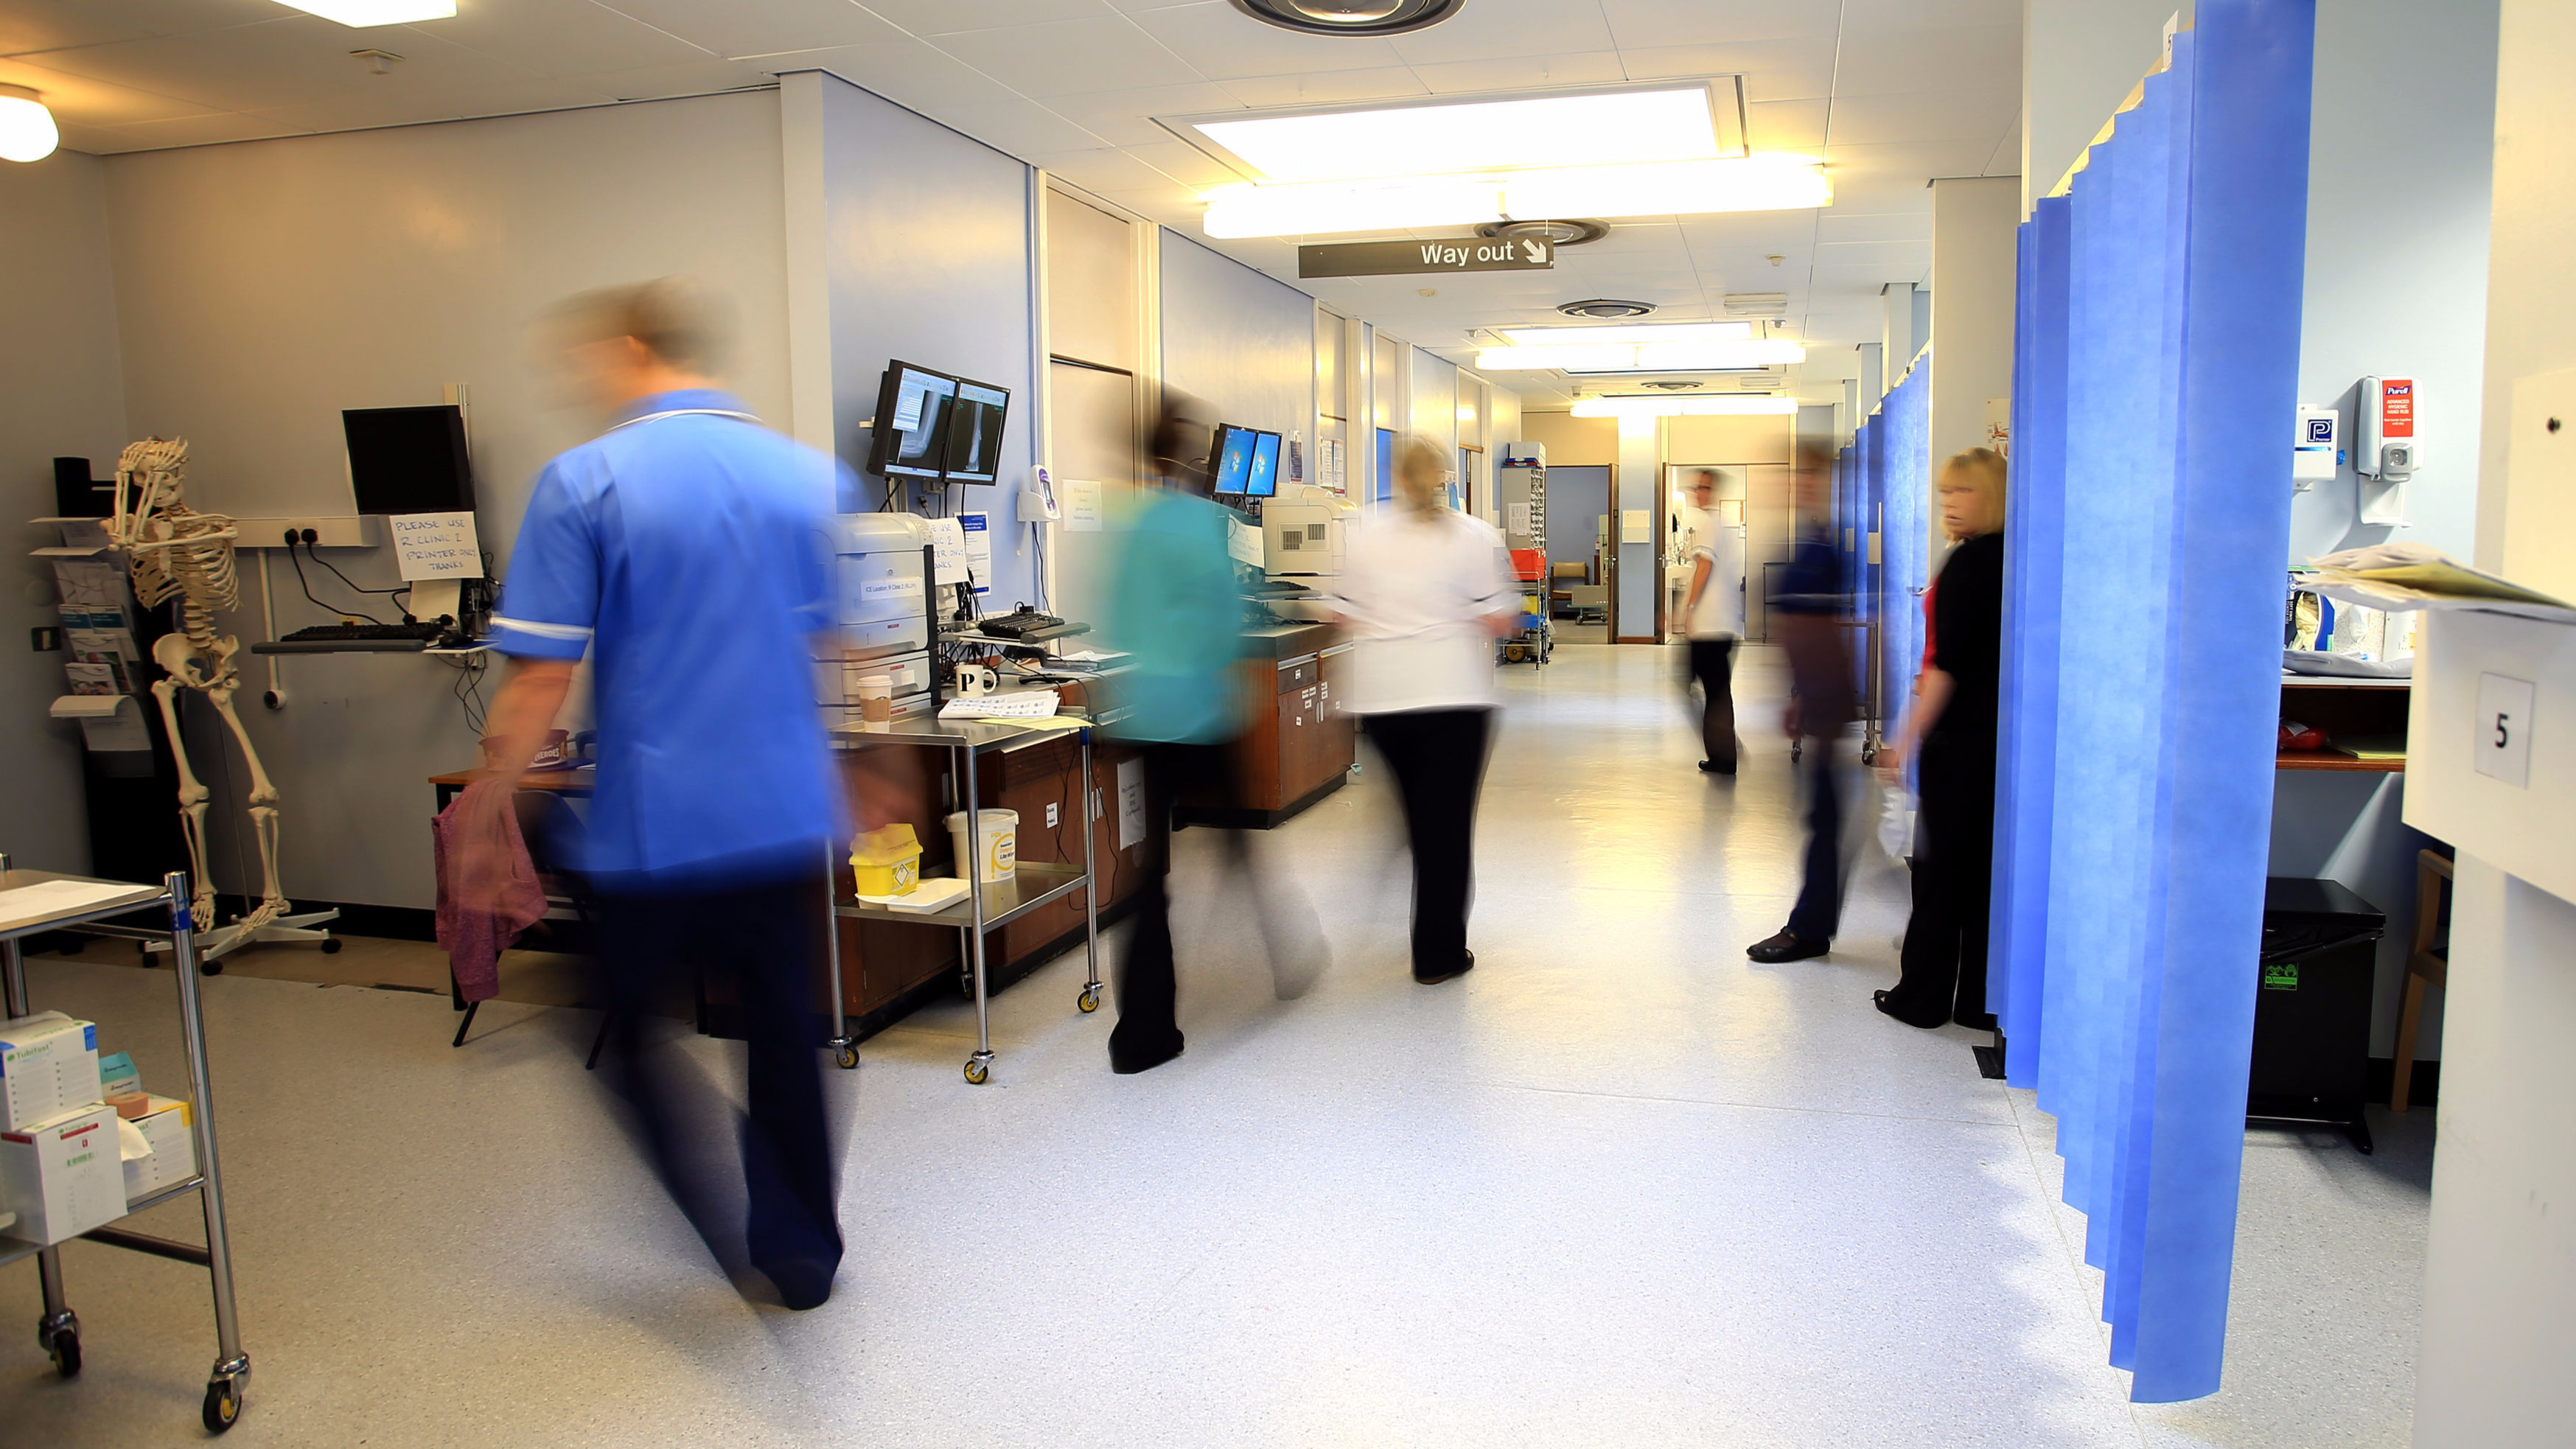 Fromer NHS Surgeon Delivers Savage Message About Who He Hates Treating